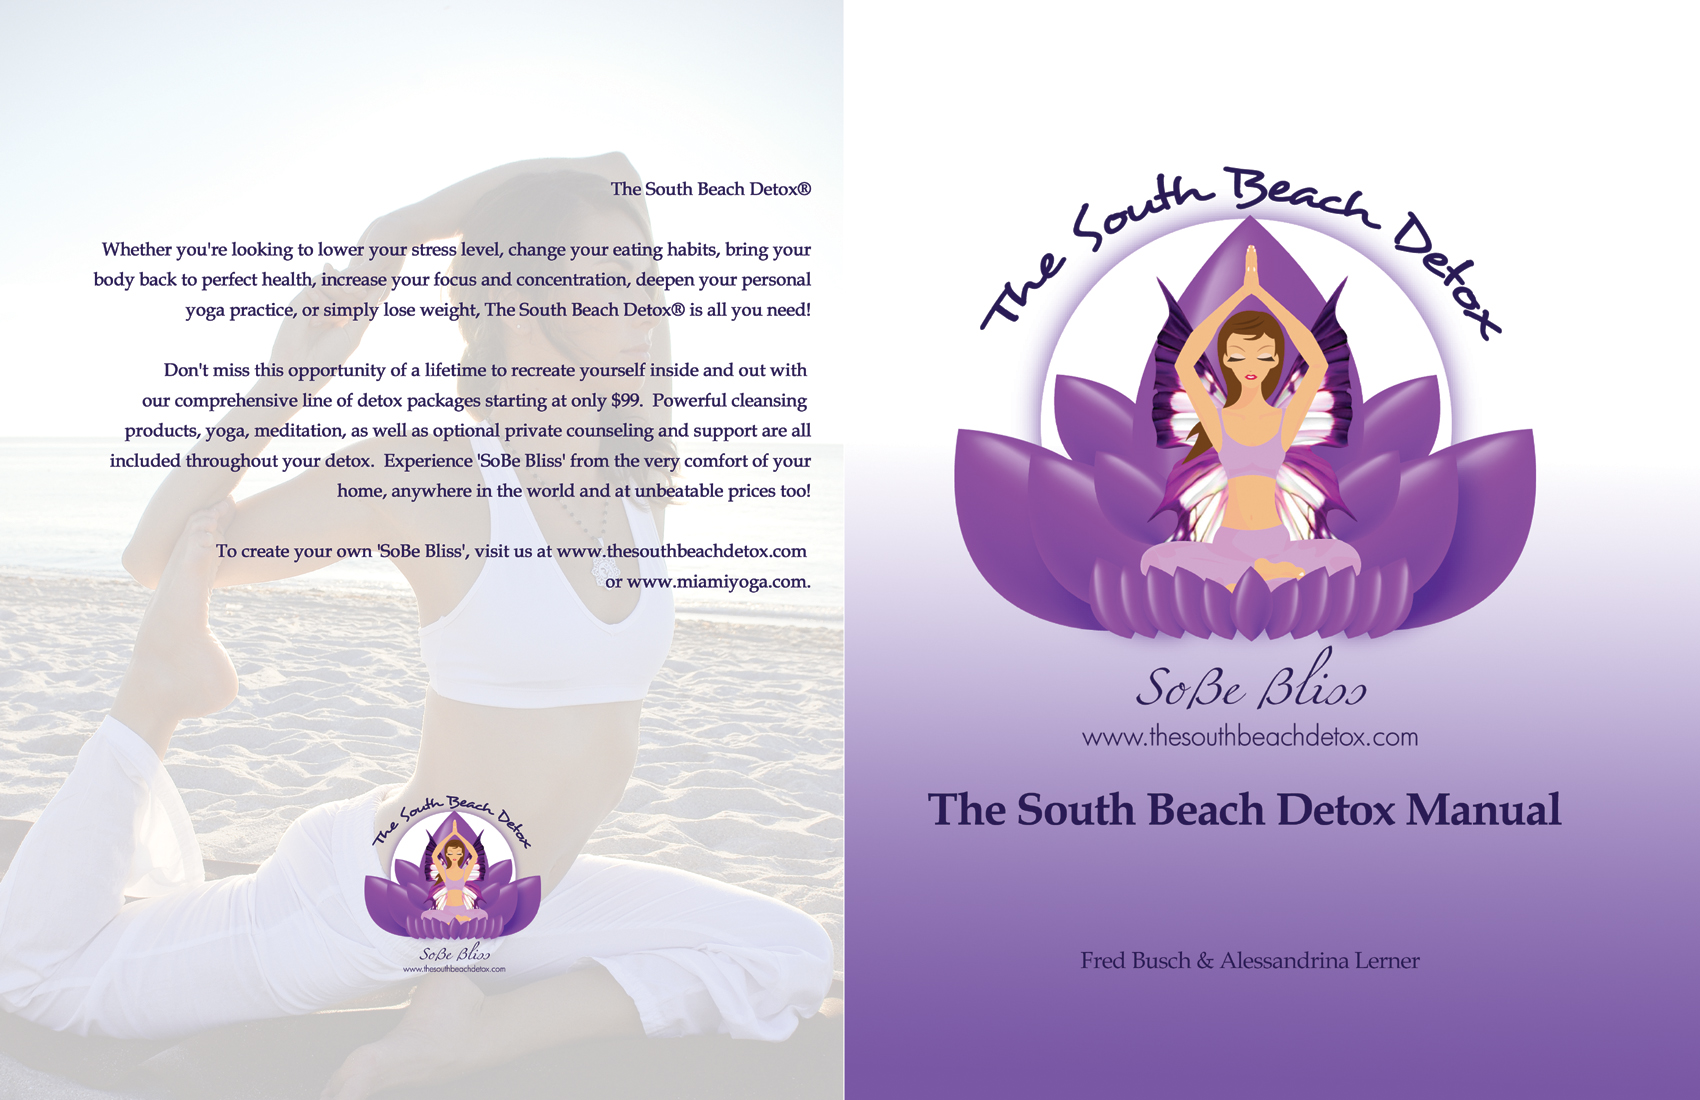 The South Beach Detox